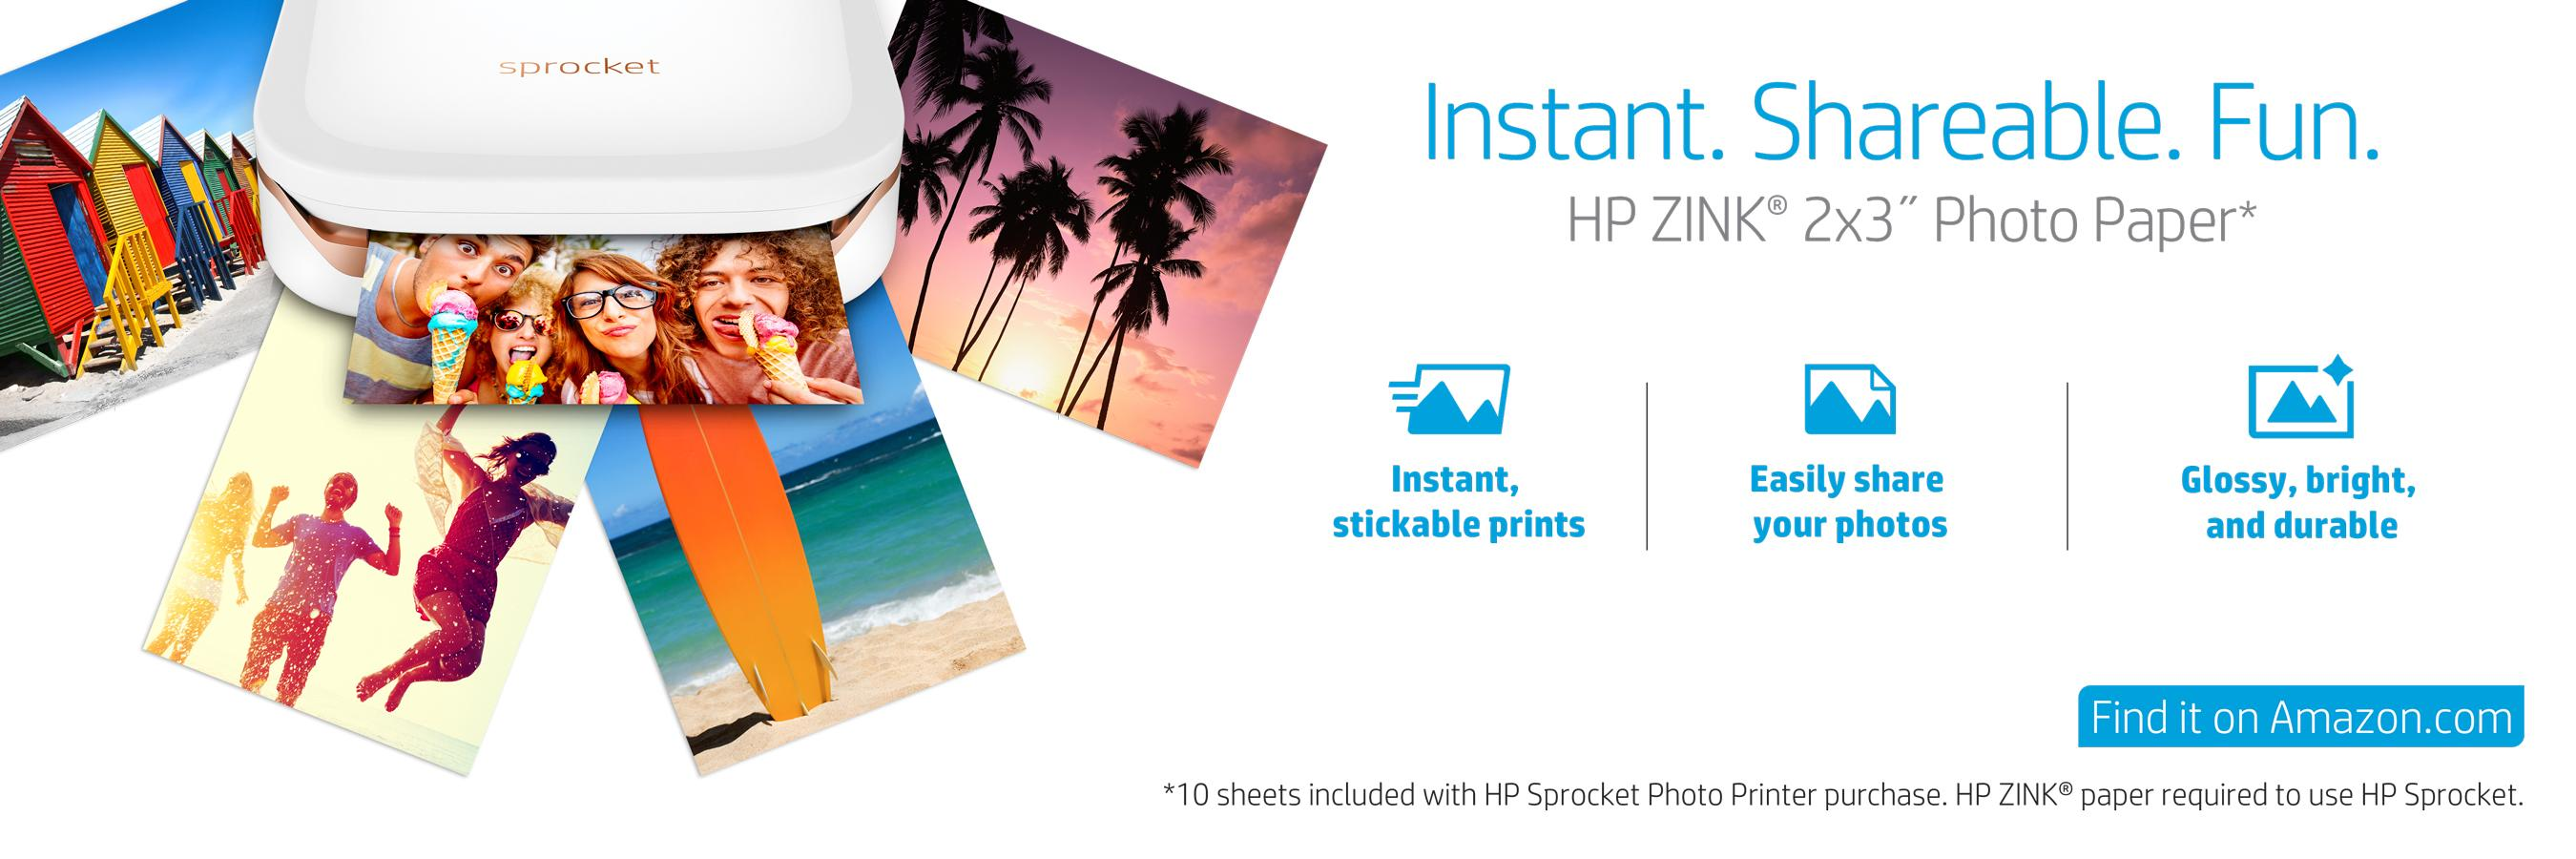 hp sprocket photo printer how to use